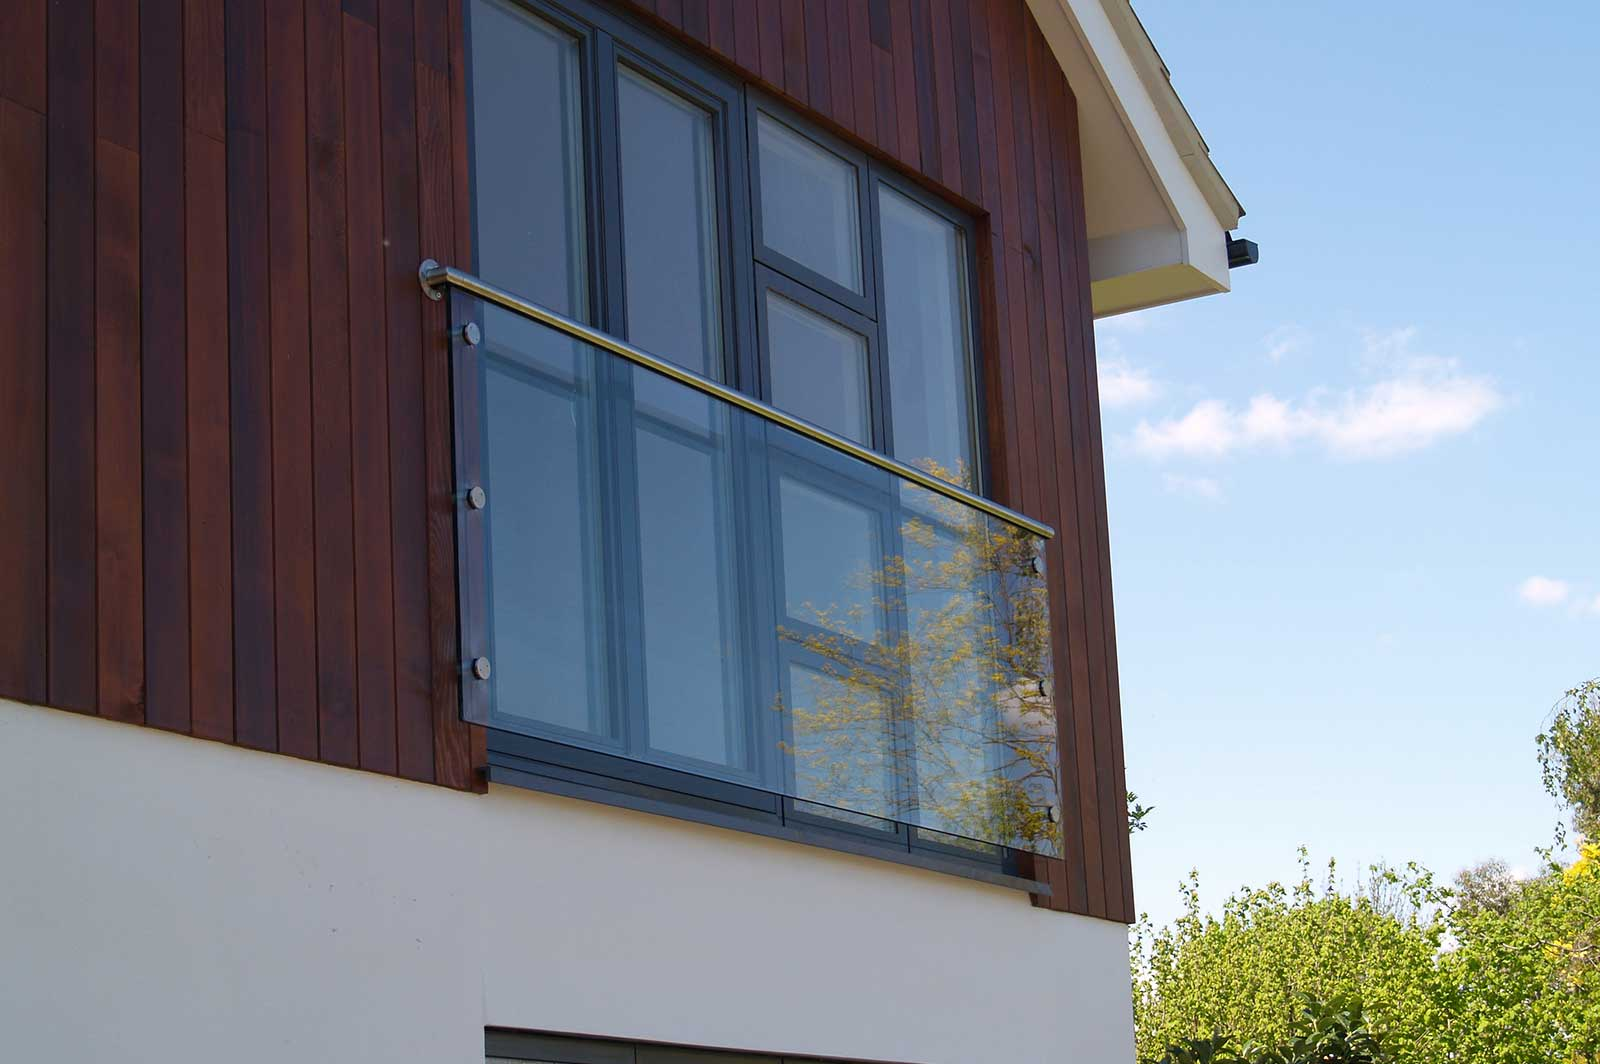 External Glass Balustrade Balconies, New Build